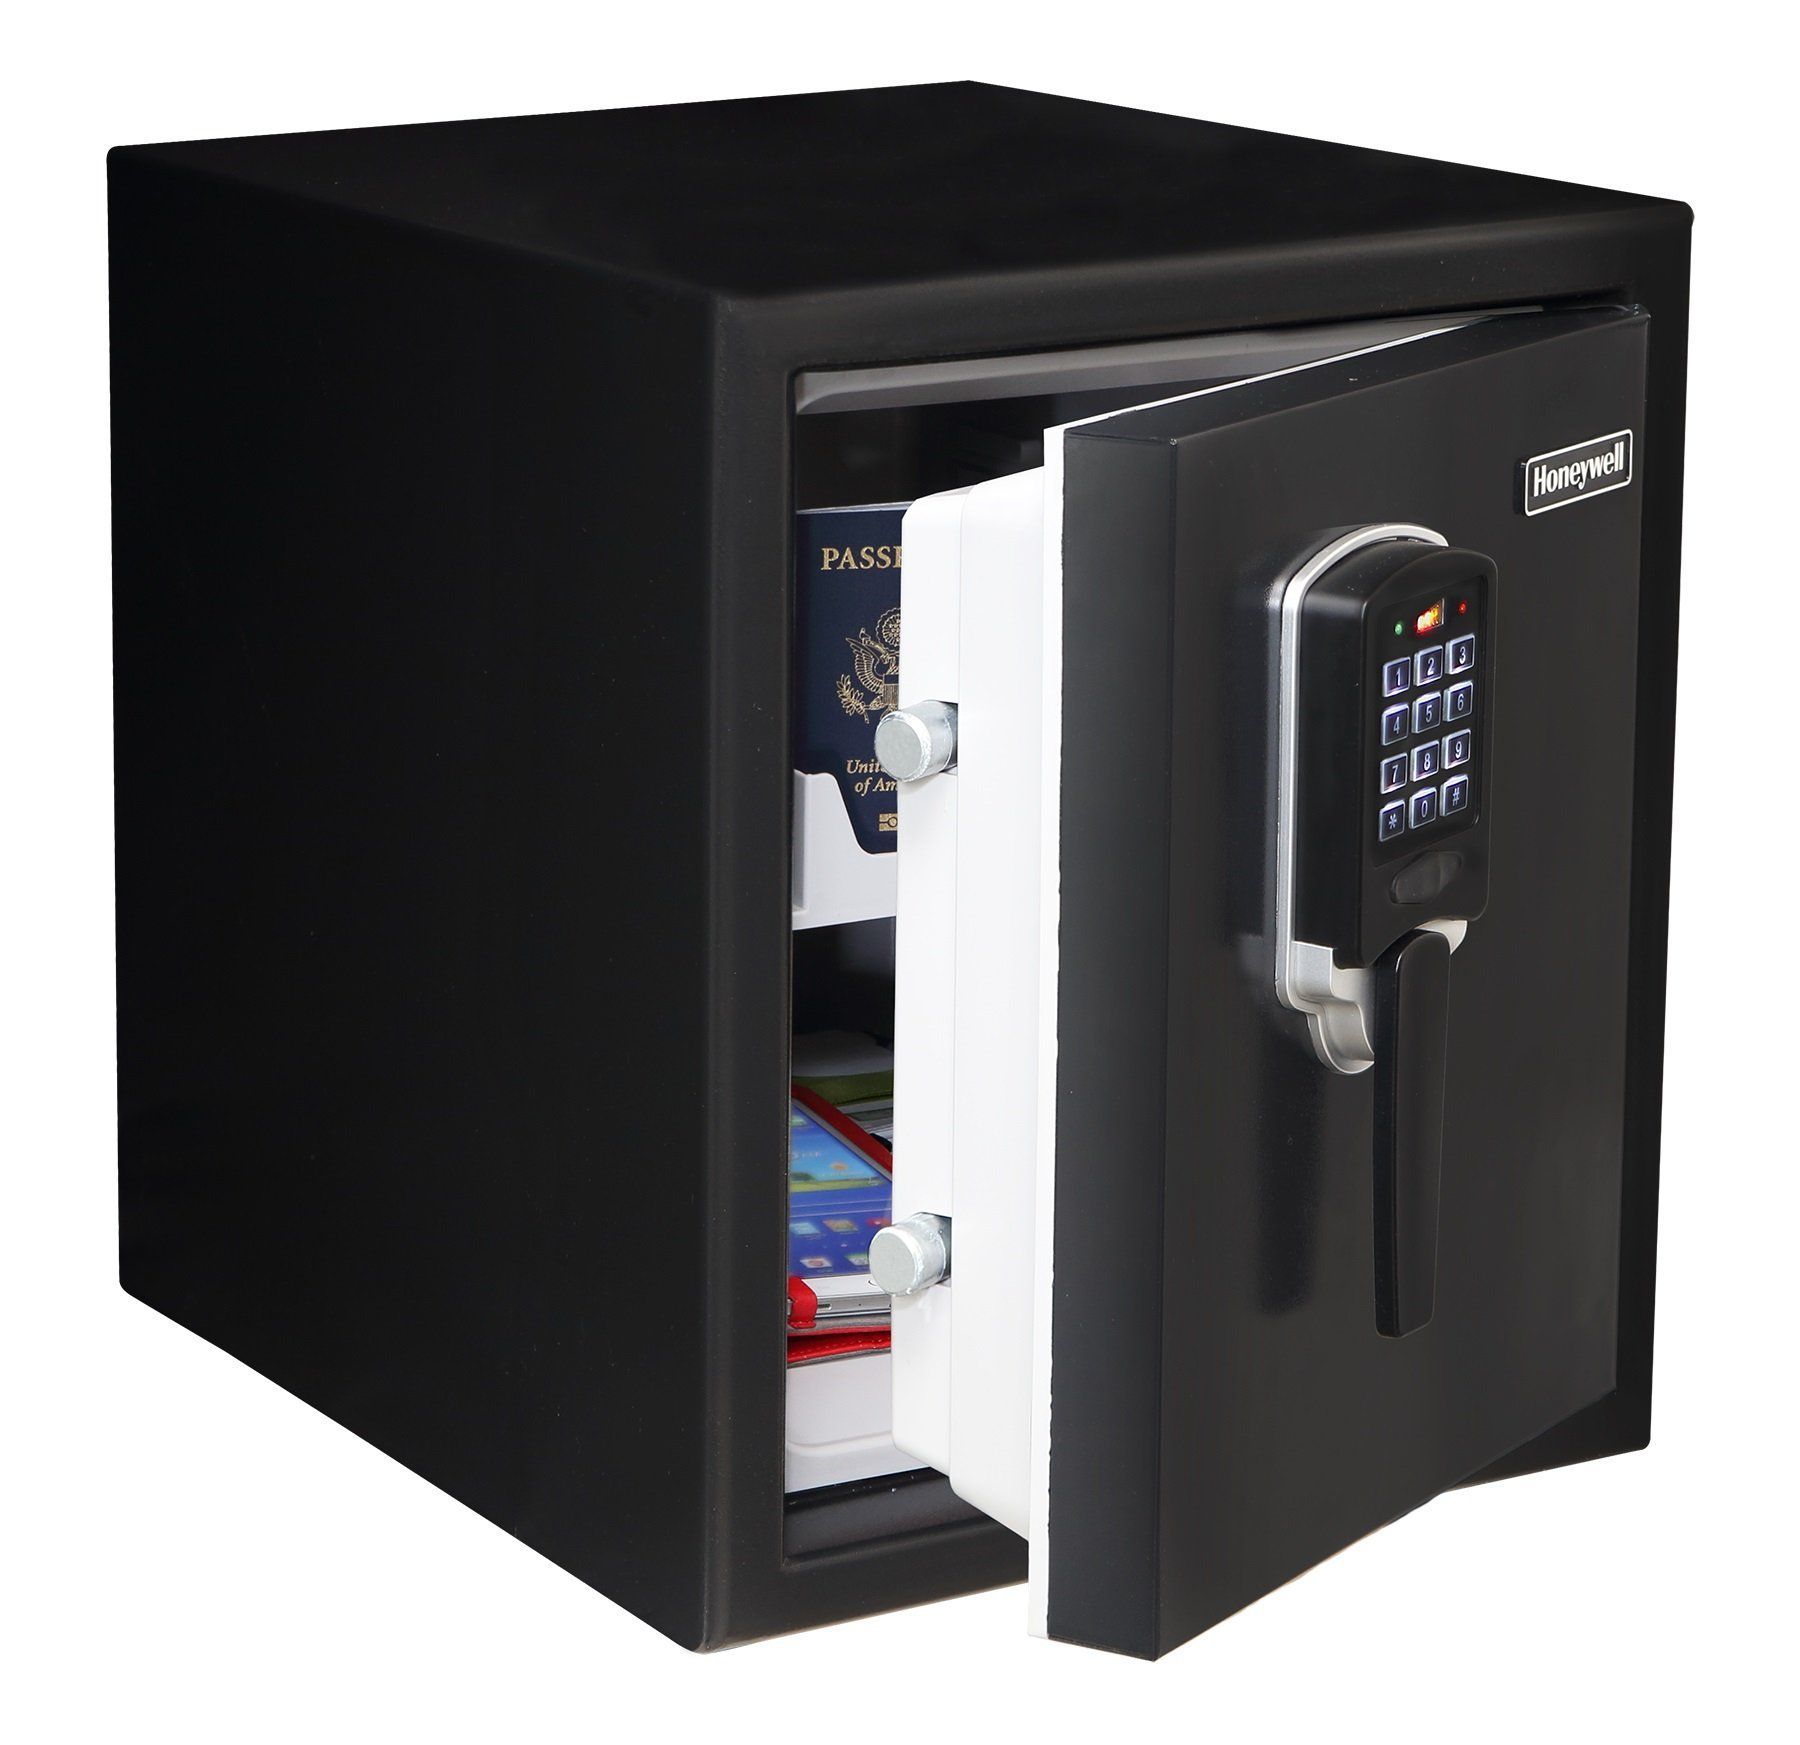 Fireproof Safes & Waterproof Chests - Honeywell 2605 Waterproof 2 Hour Fire Safe